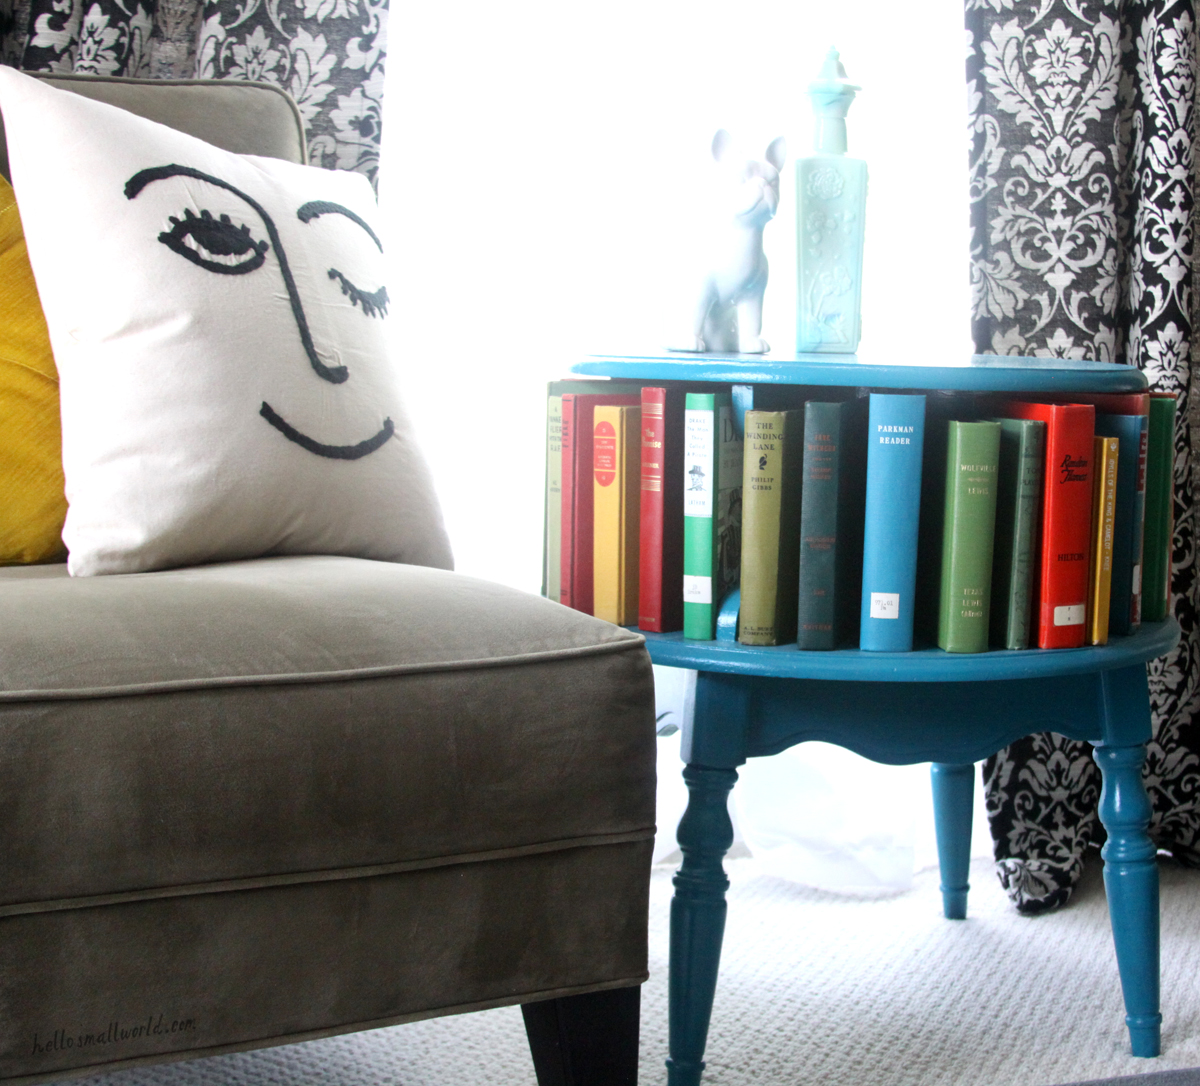 painted thrift store table with colorful vintage books in a reading nook with a winky face pillow from urban outfitters